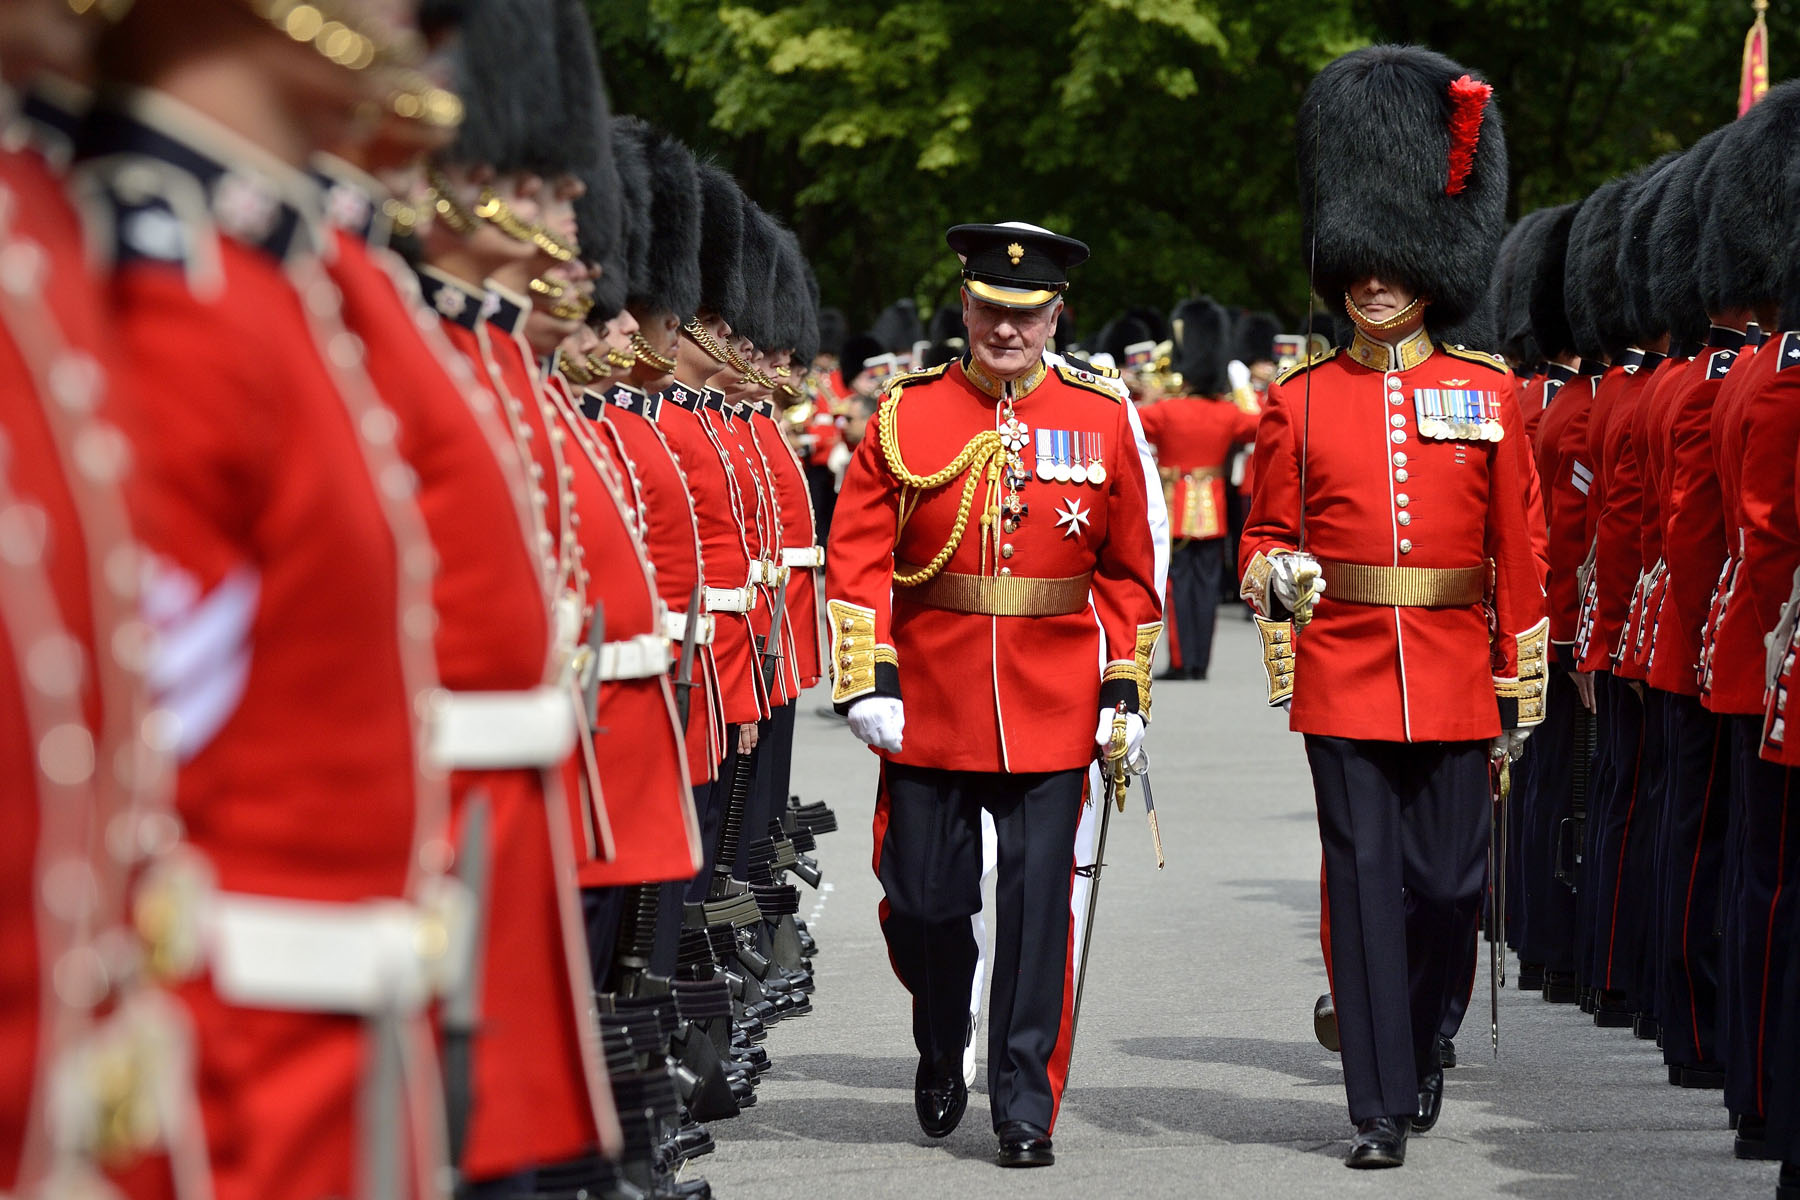 The members of the Ceremonial Guard come from right across Canada, and their record of service is impressive.